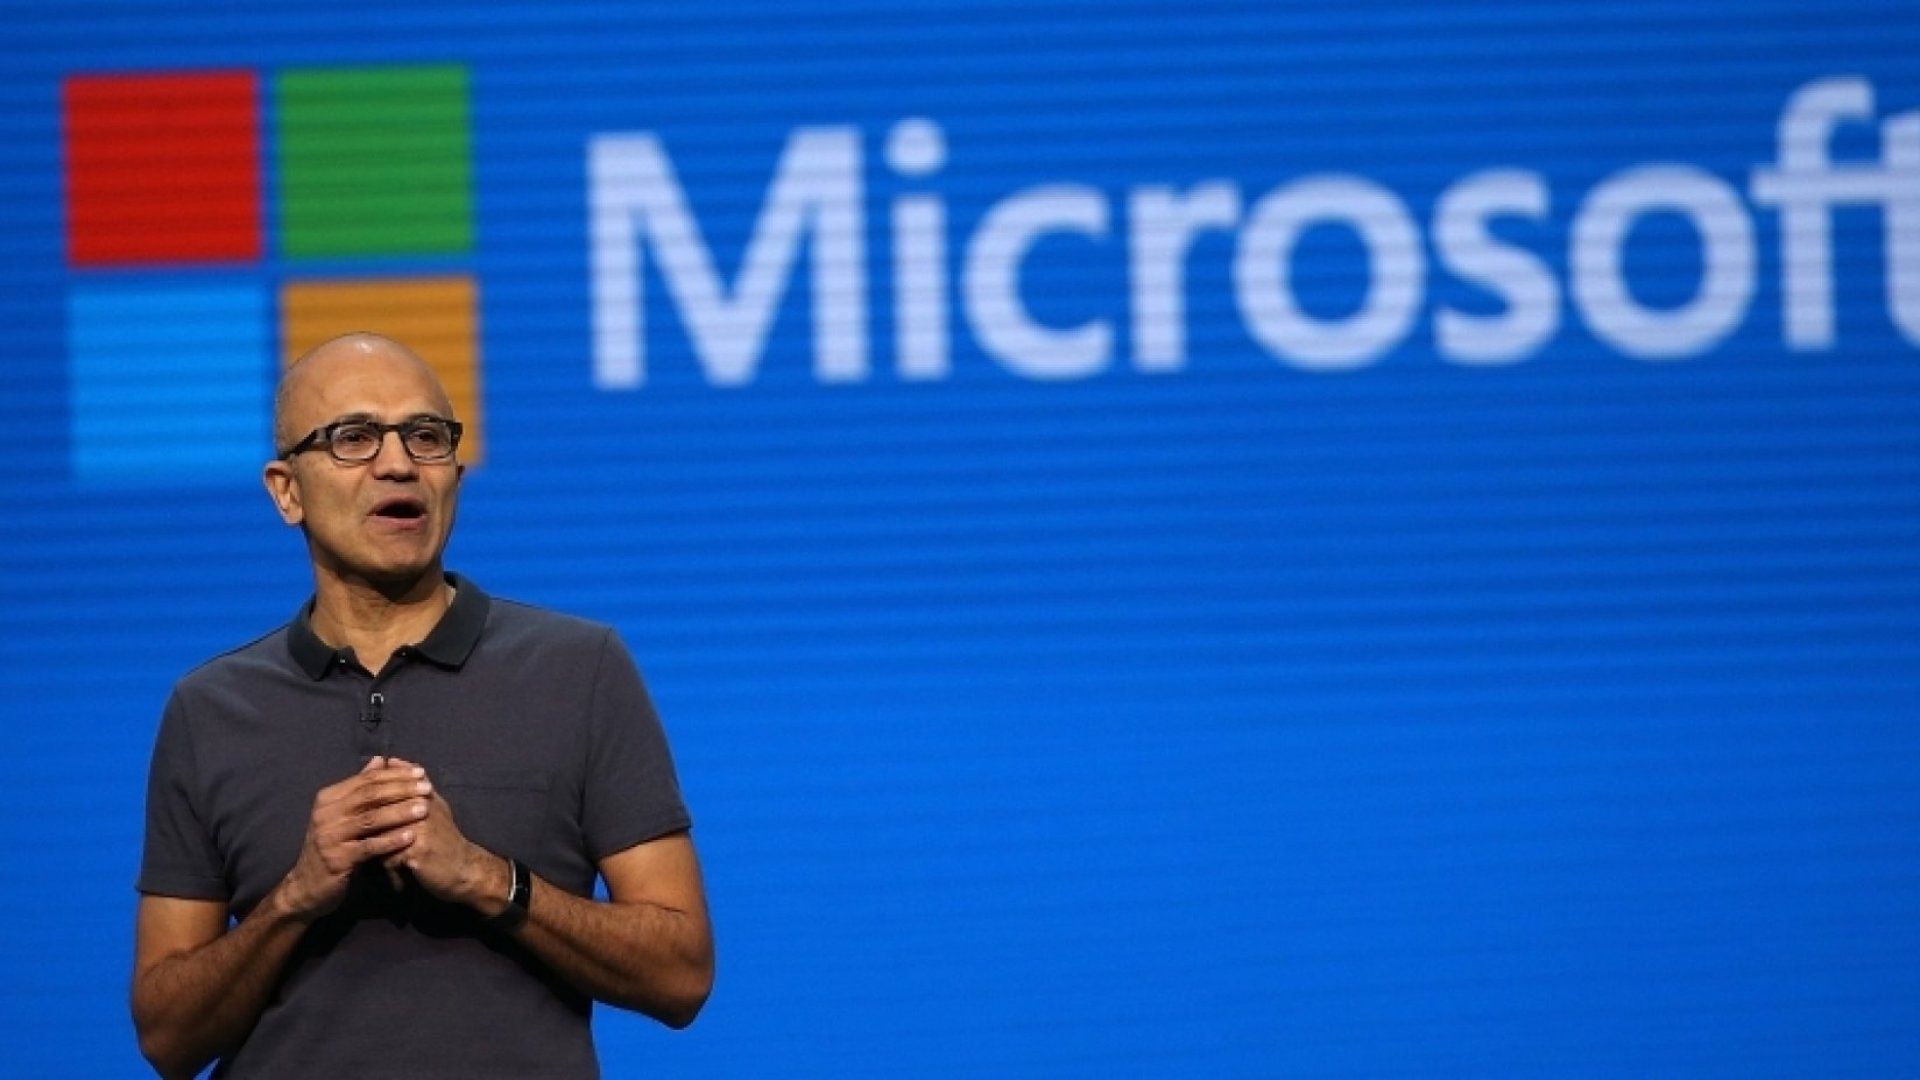 3 Amazing Things Microsoft Could Do With LinkedIn